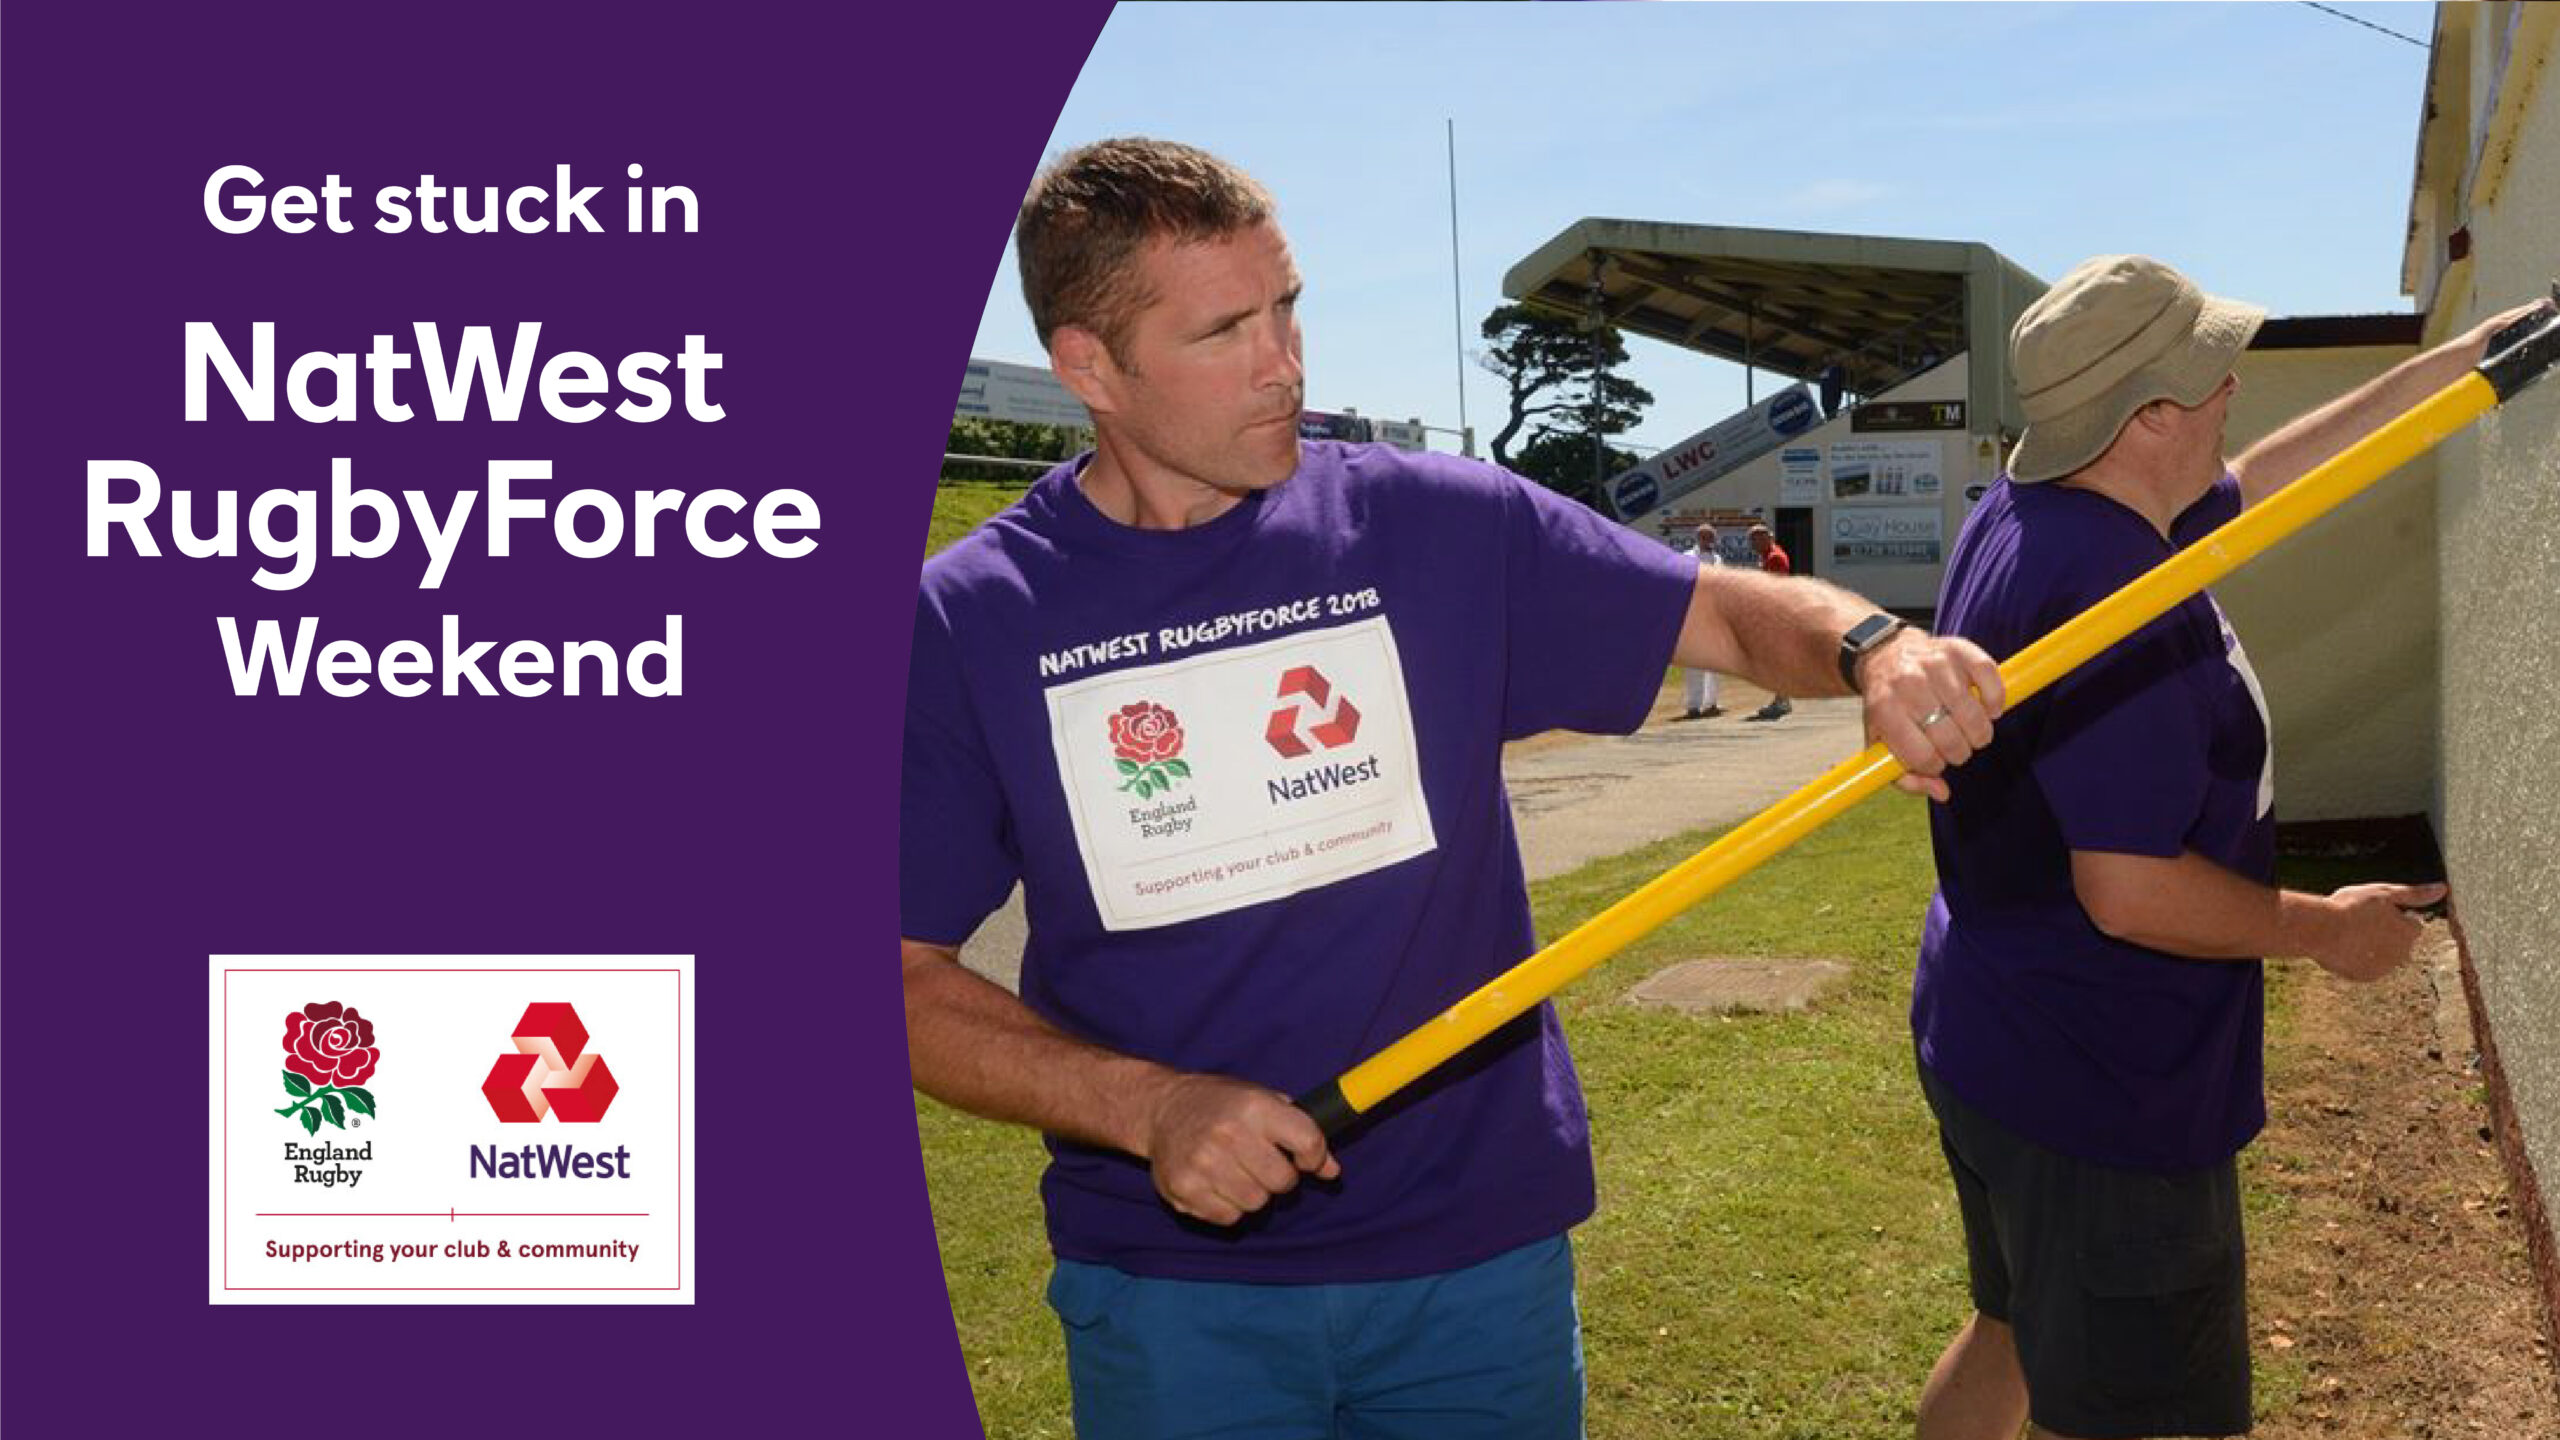 NatWest and England RFU Rugby Force